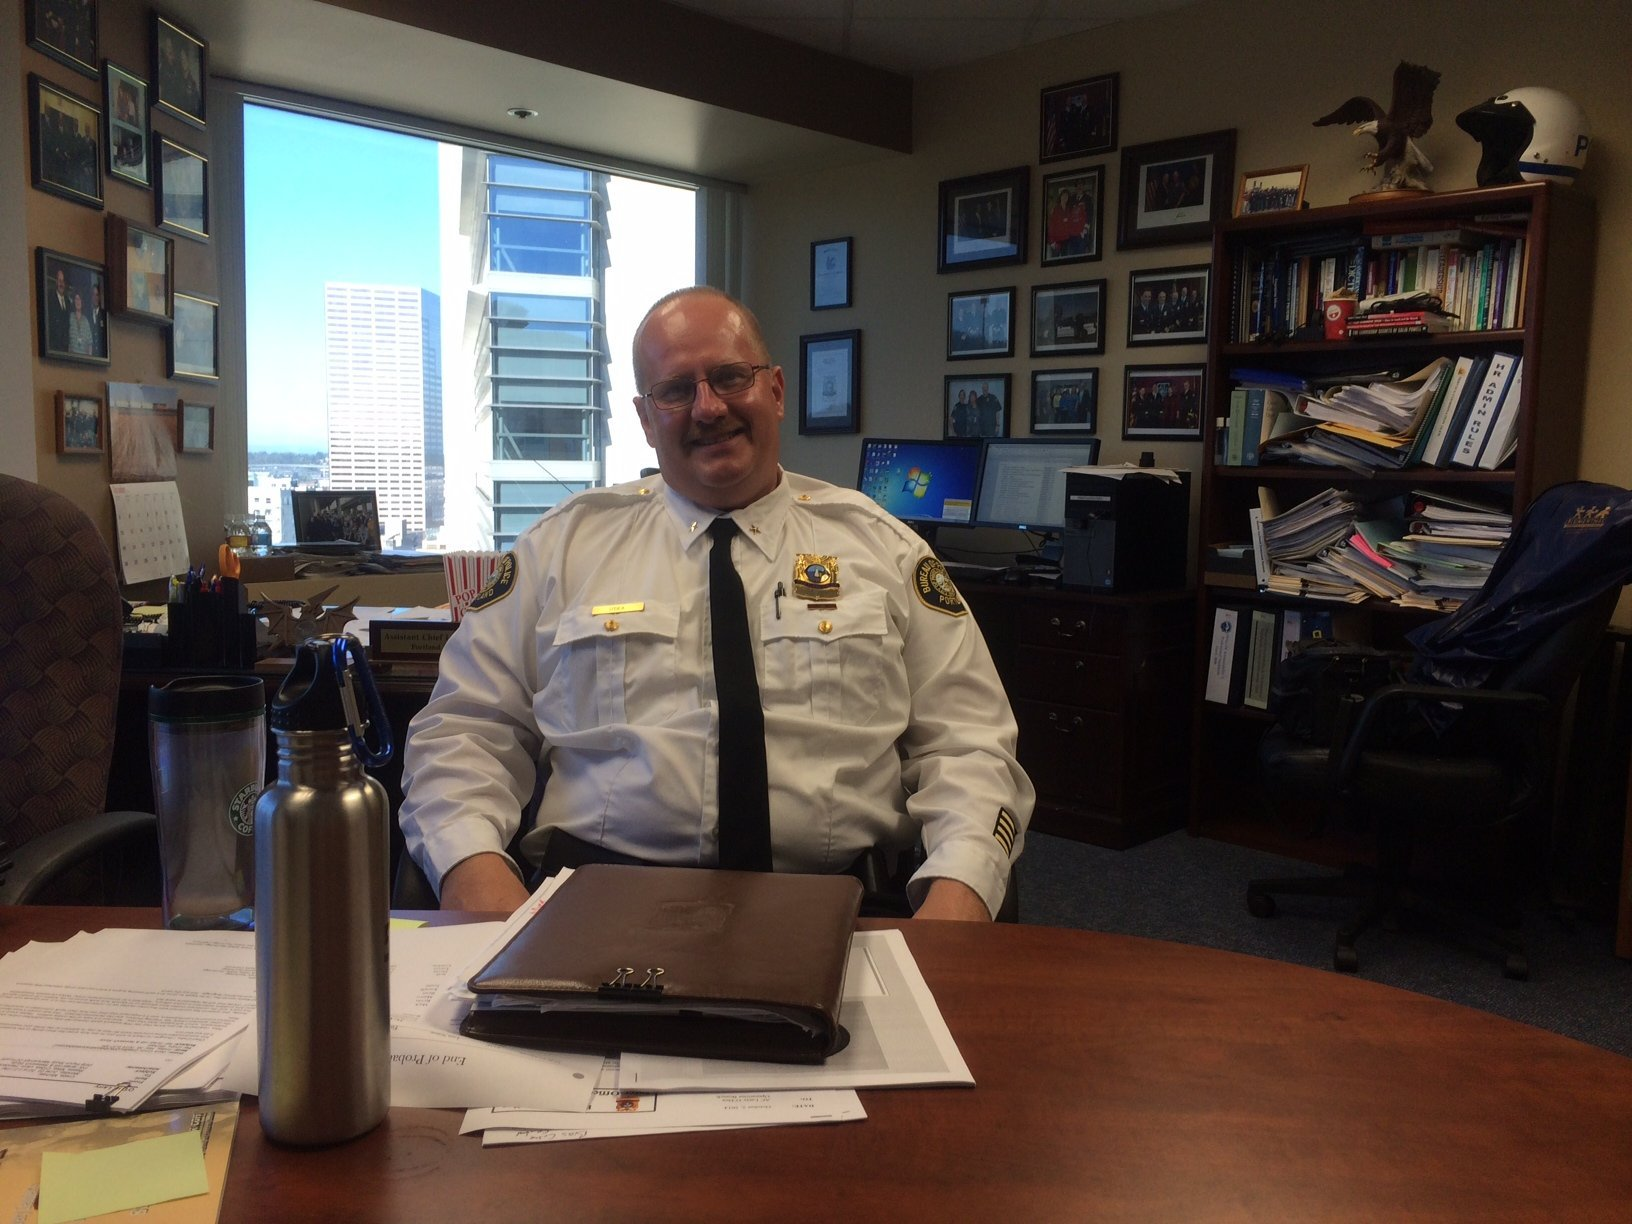 Police Chief-to-be Larry O'Dea